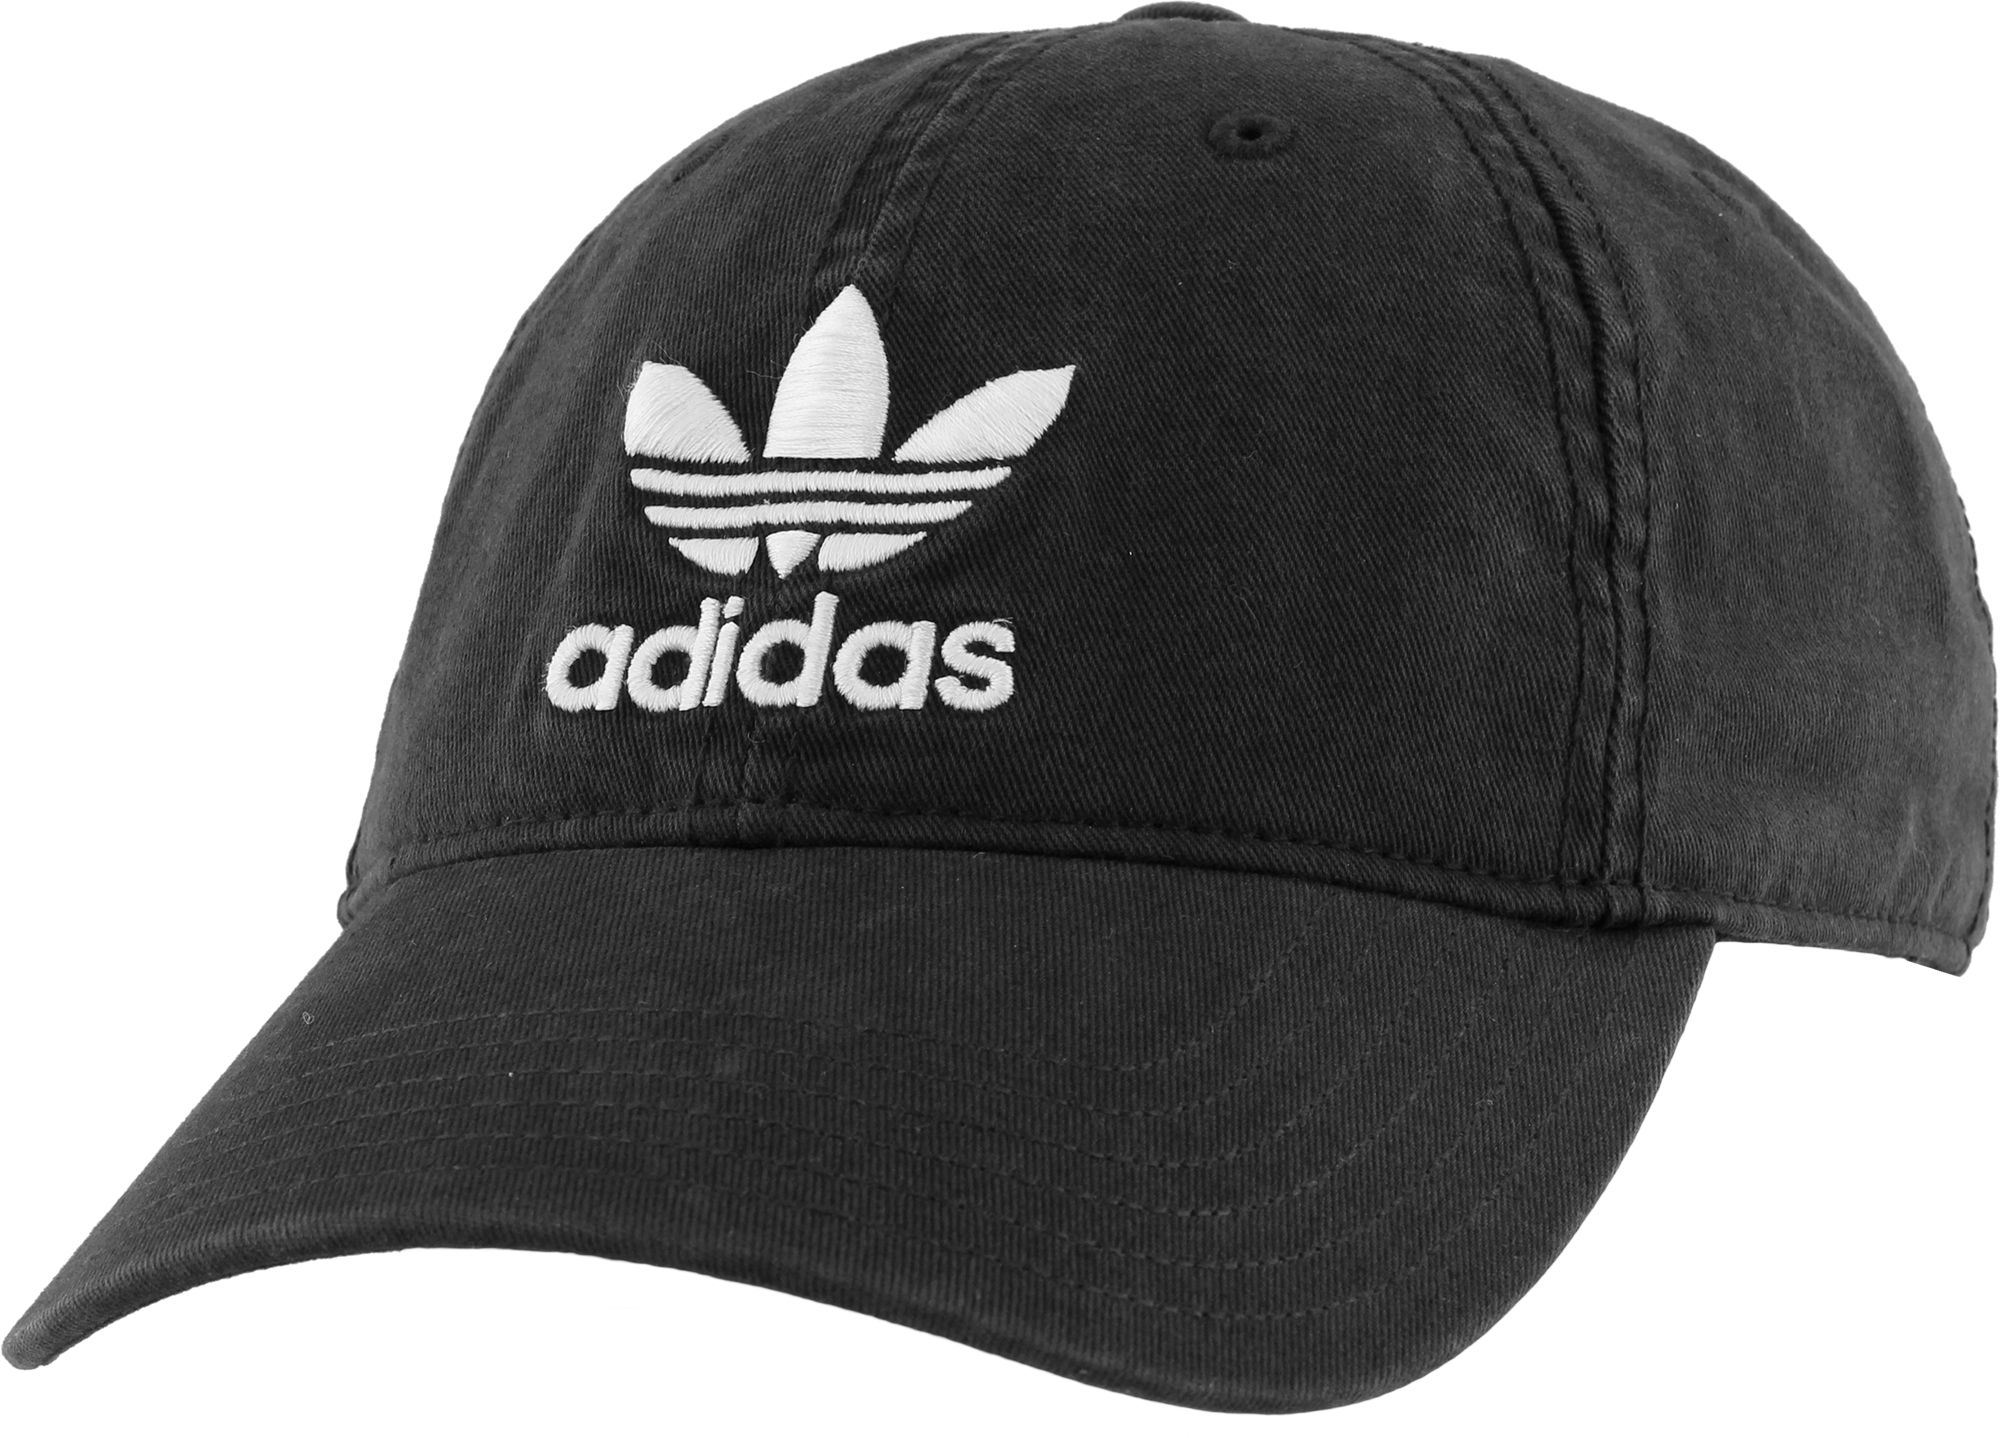 adidas Mens Originals Relaxed Hat DICKS Sporting Goods